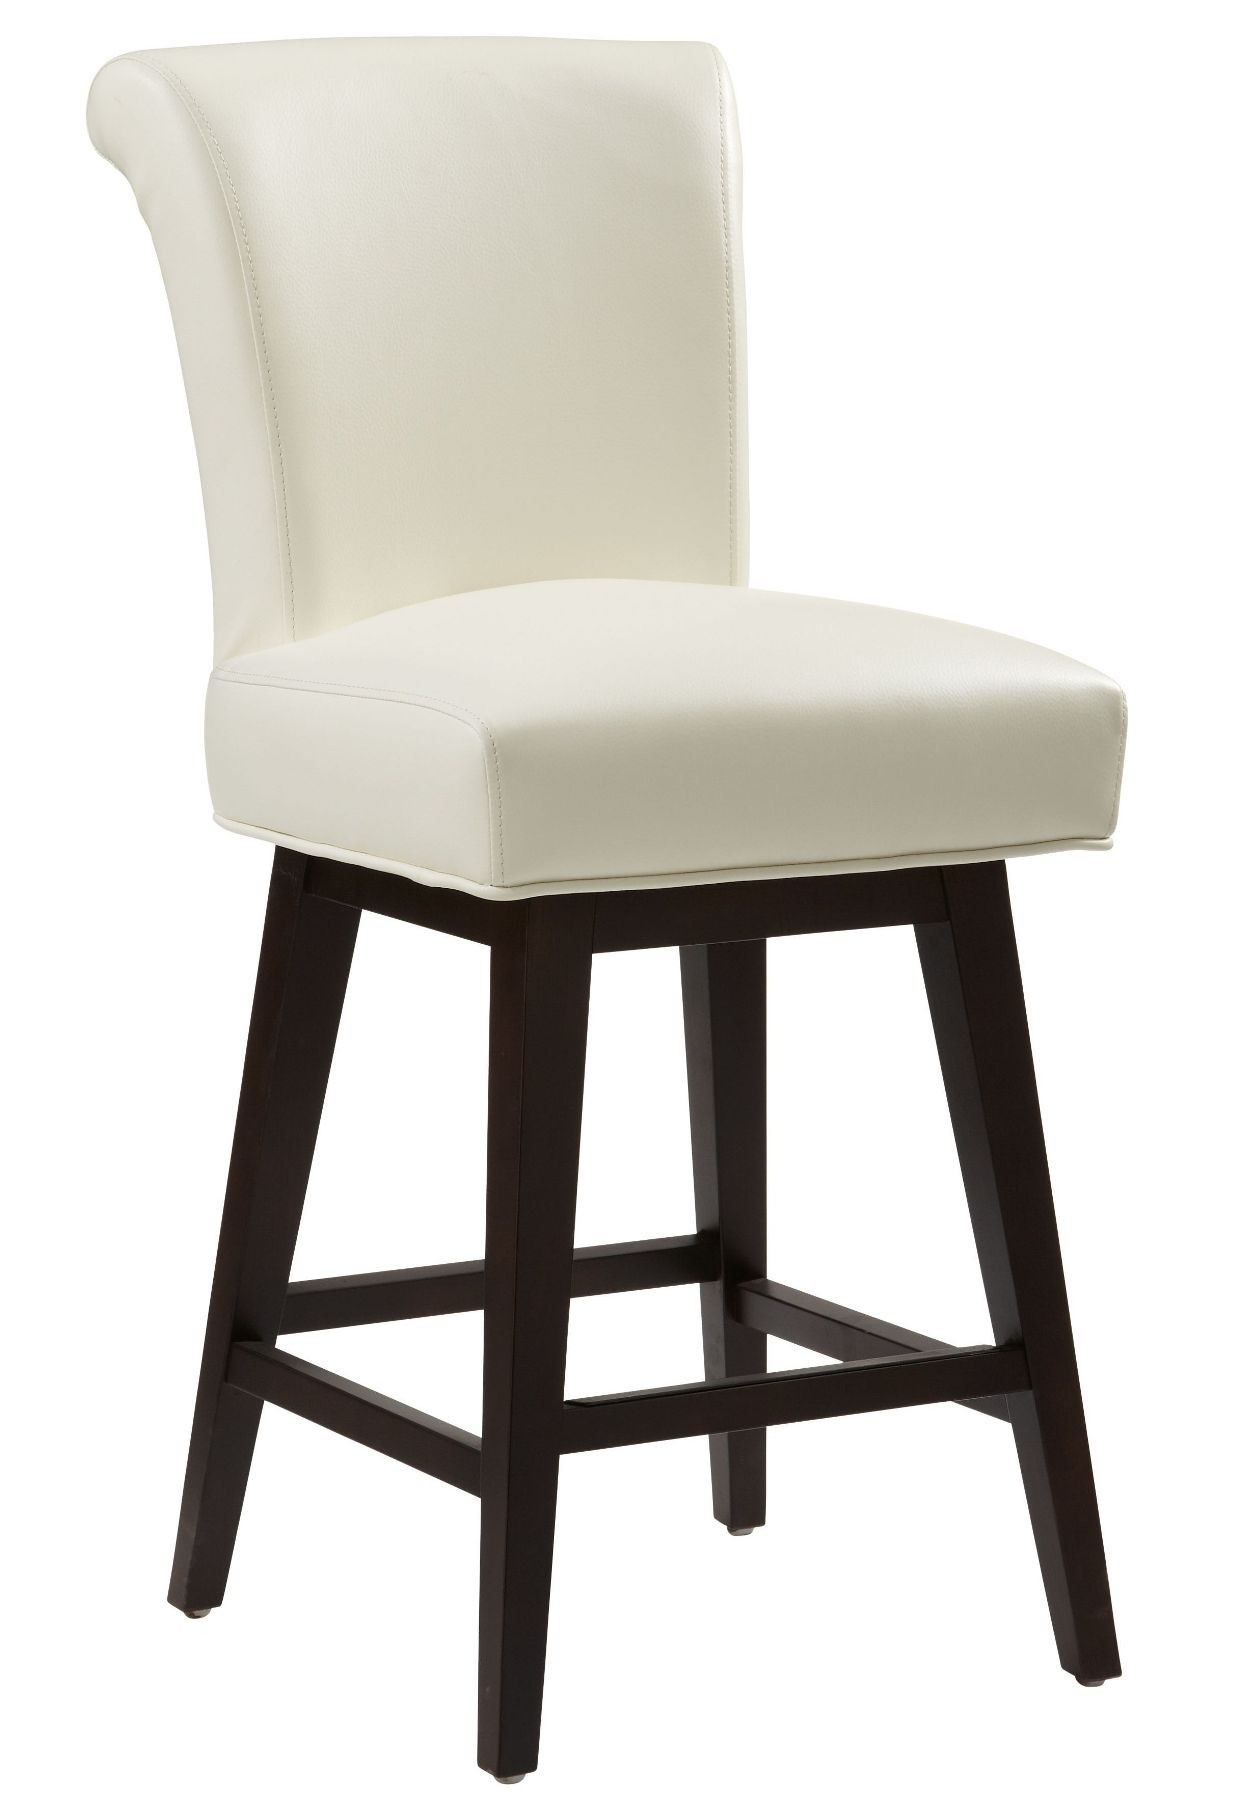 White Faux Leather Kitchen Chairs